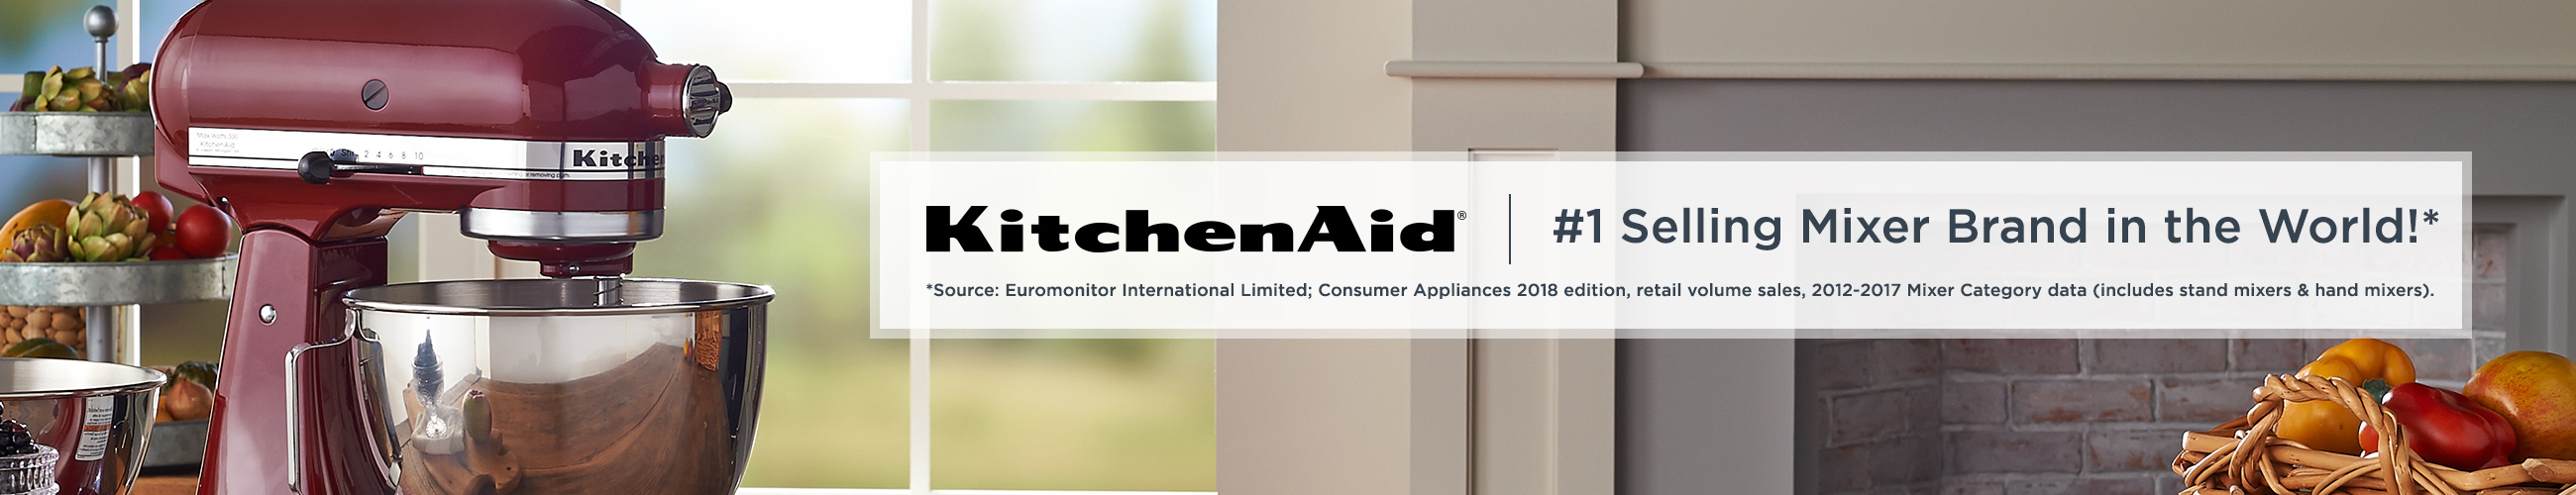 house kitchenaid appliance appliances air jenn direct sale aid factory parts deals kitchen